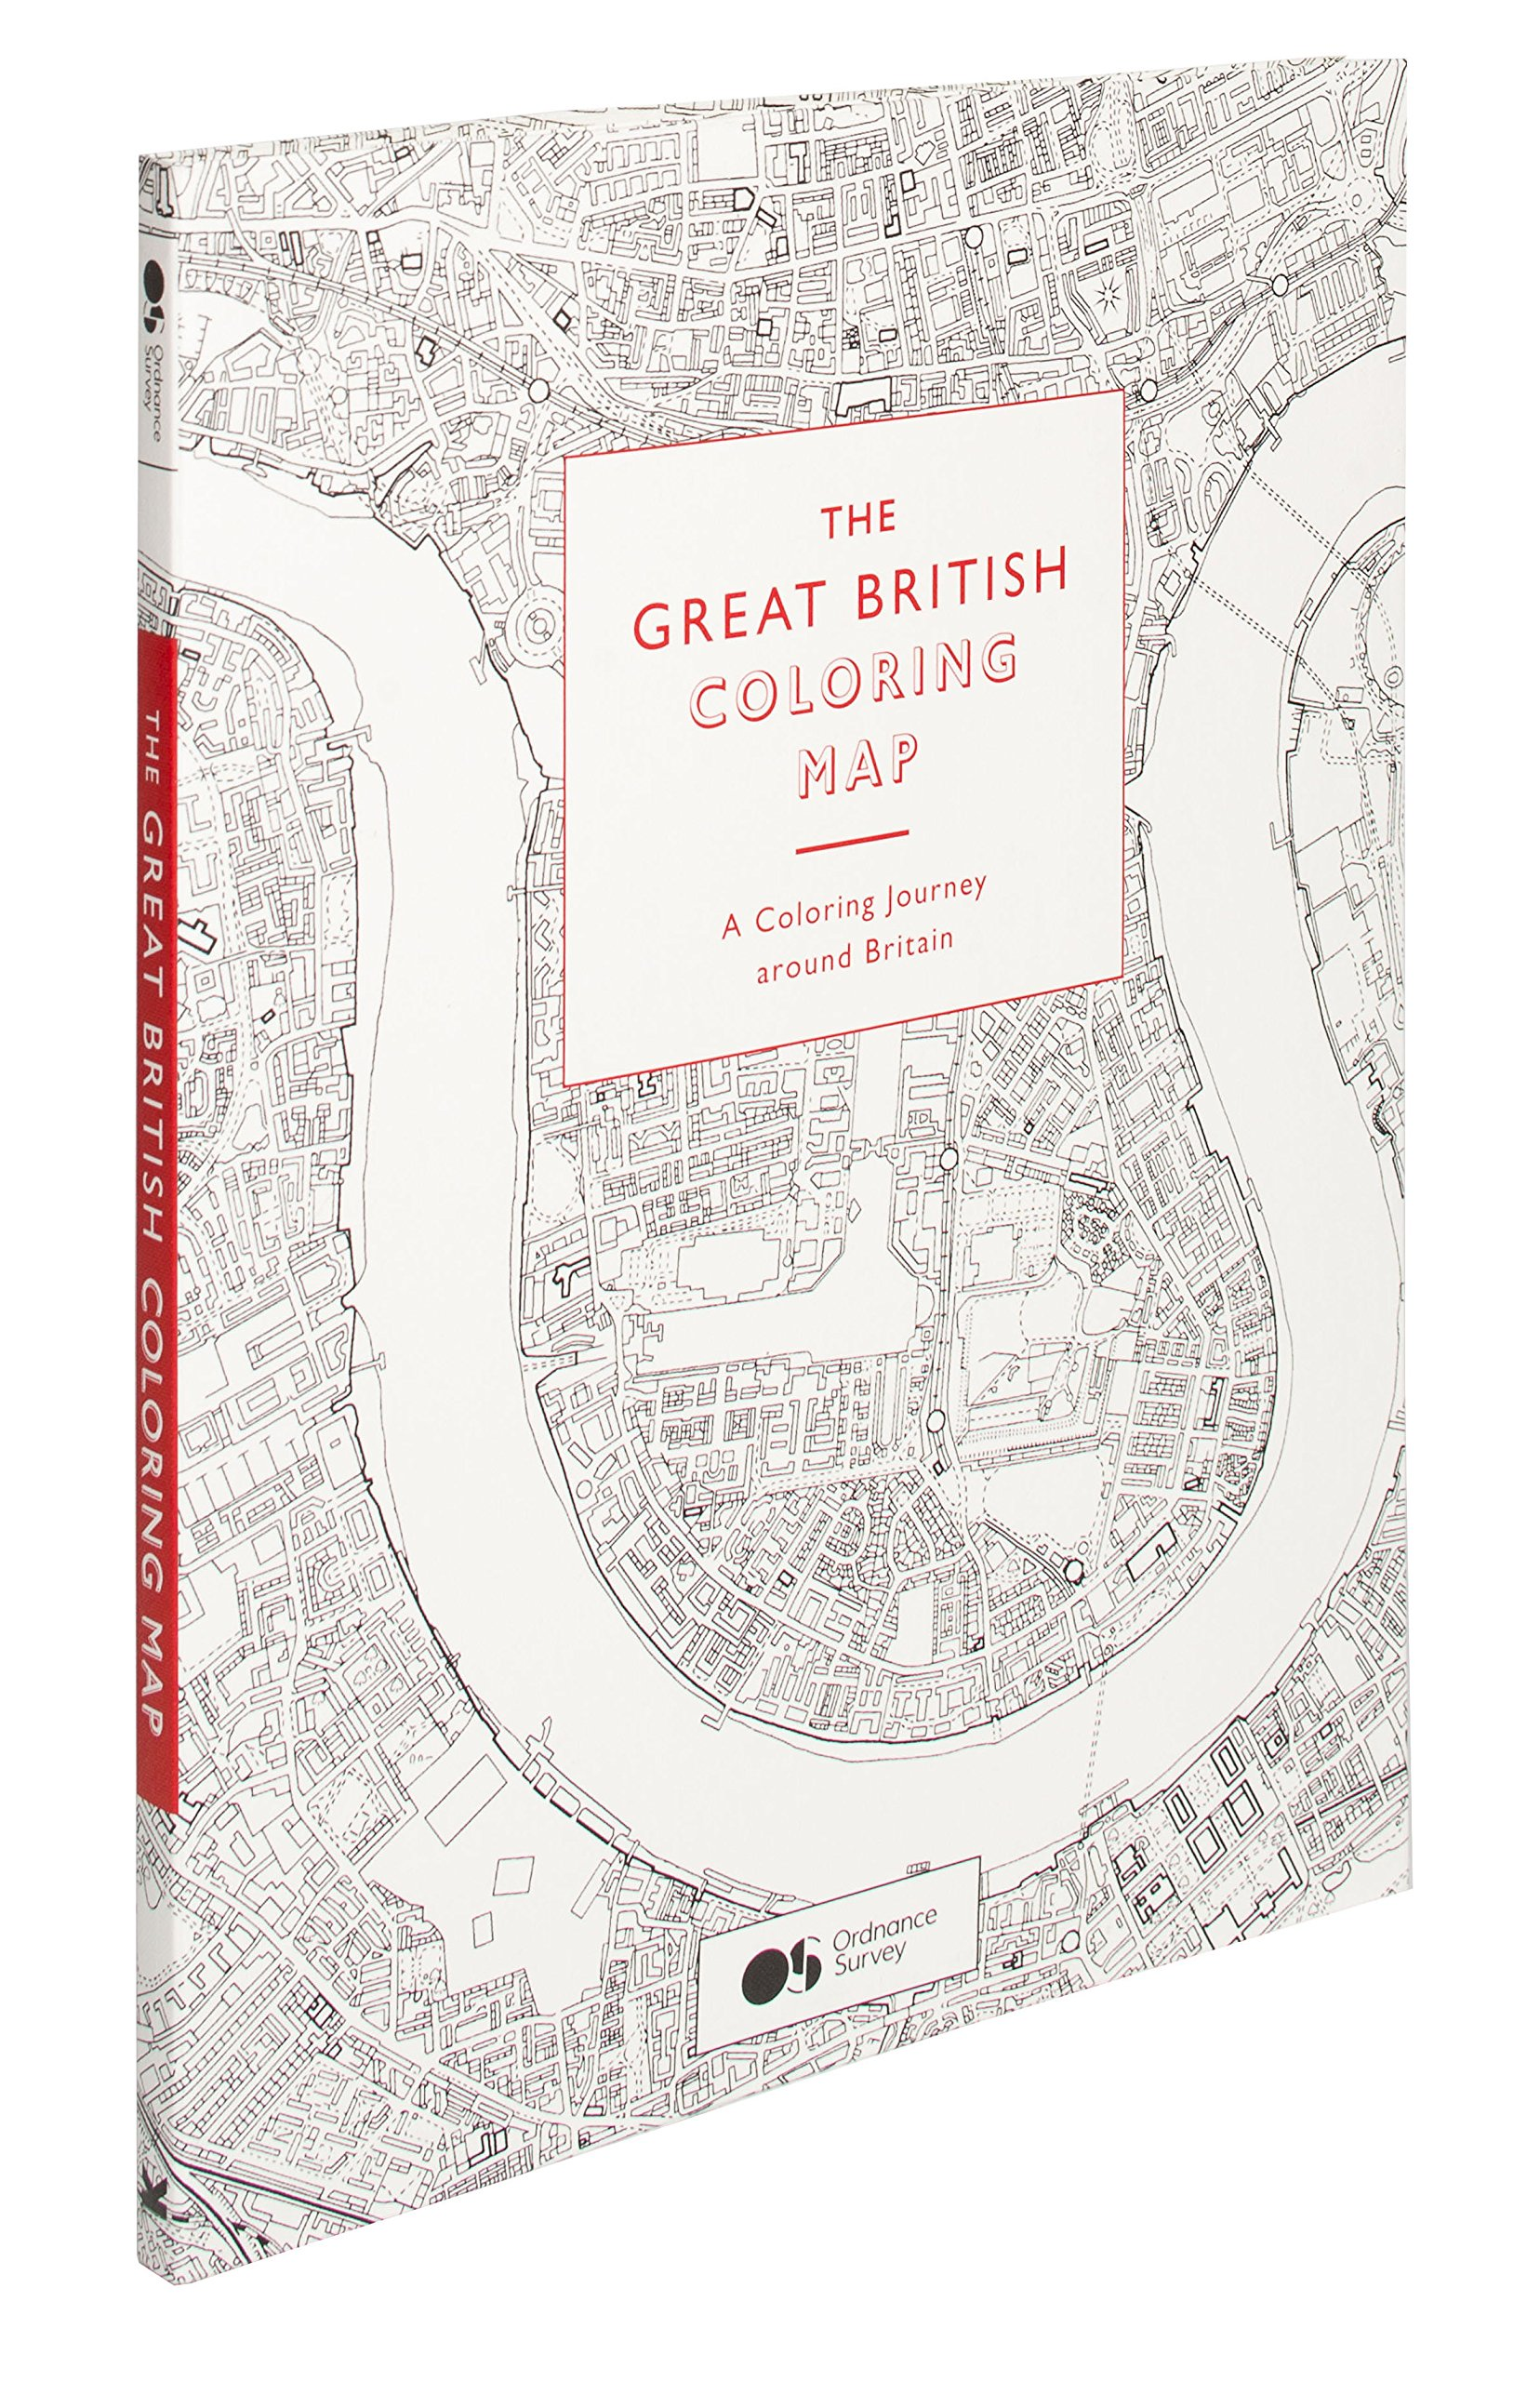 Amazon.com: The Great British Coloring Map: A coloring journey ...